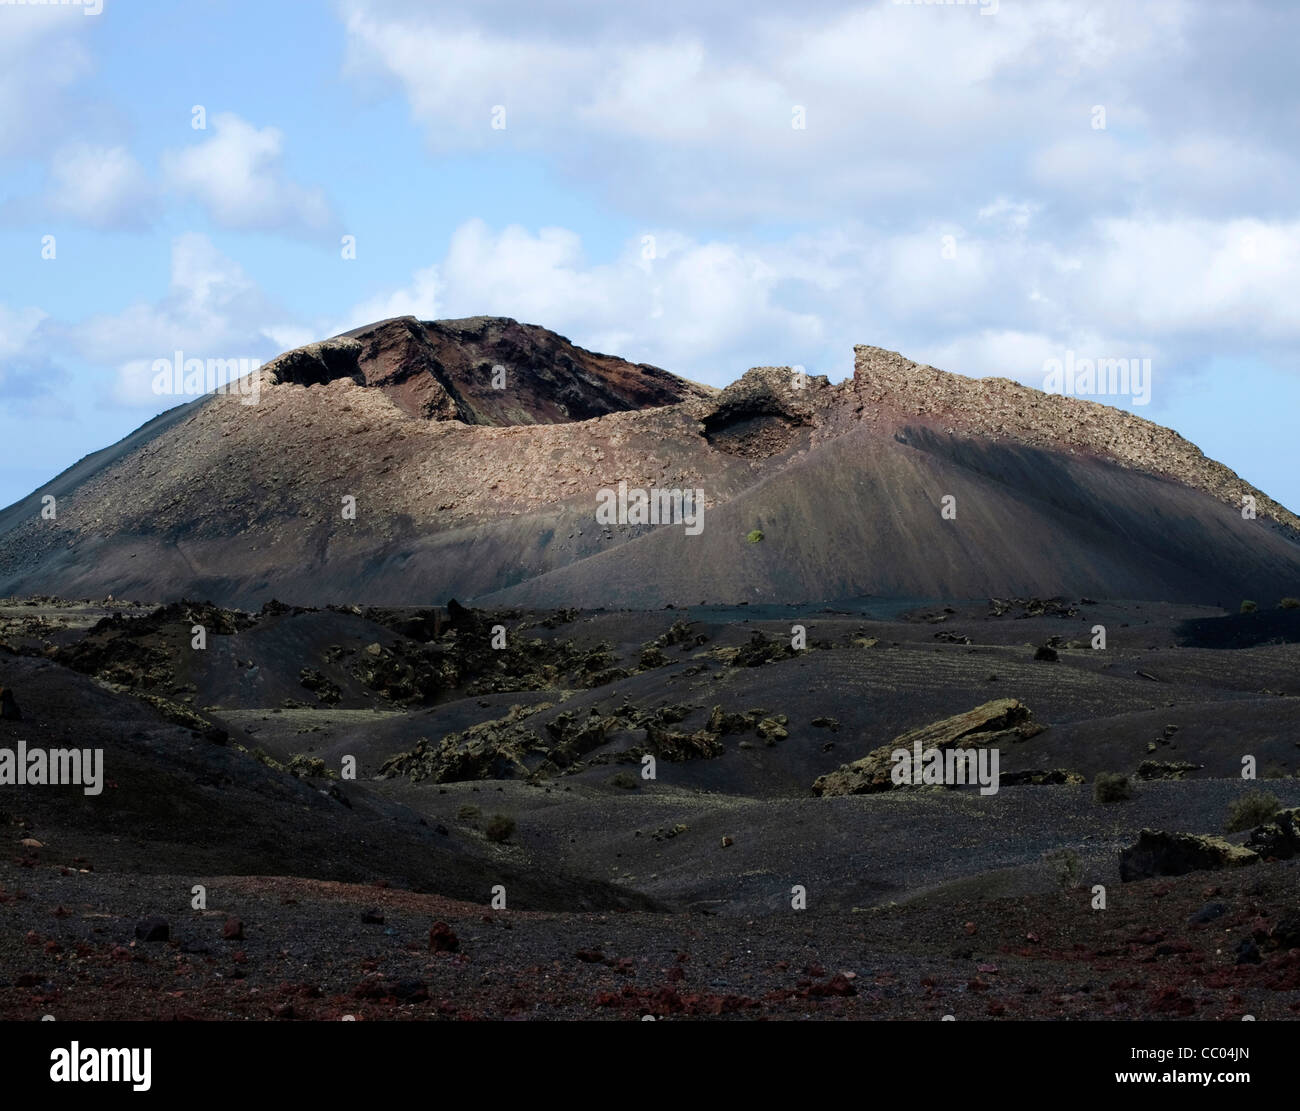 Volcano and lava flow on the Island of Lanzarote, Spain - Stock Image